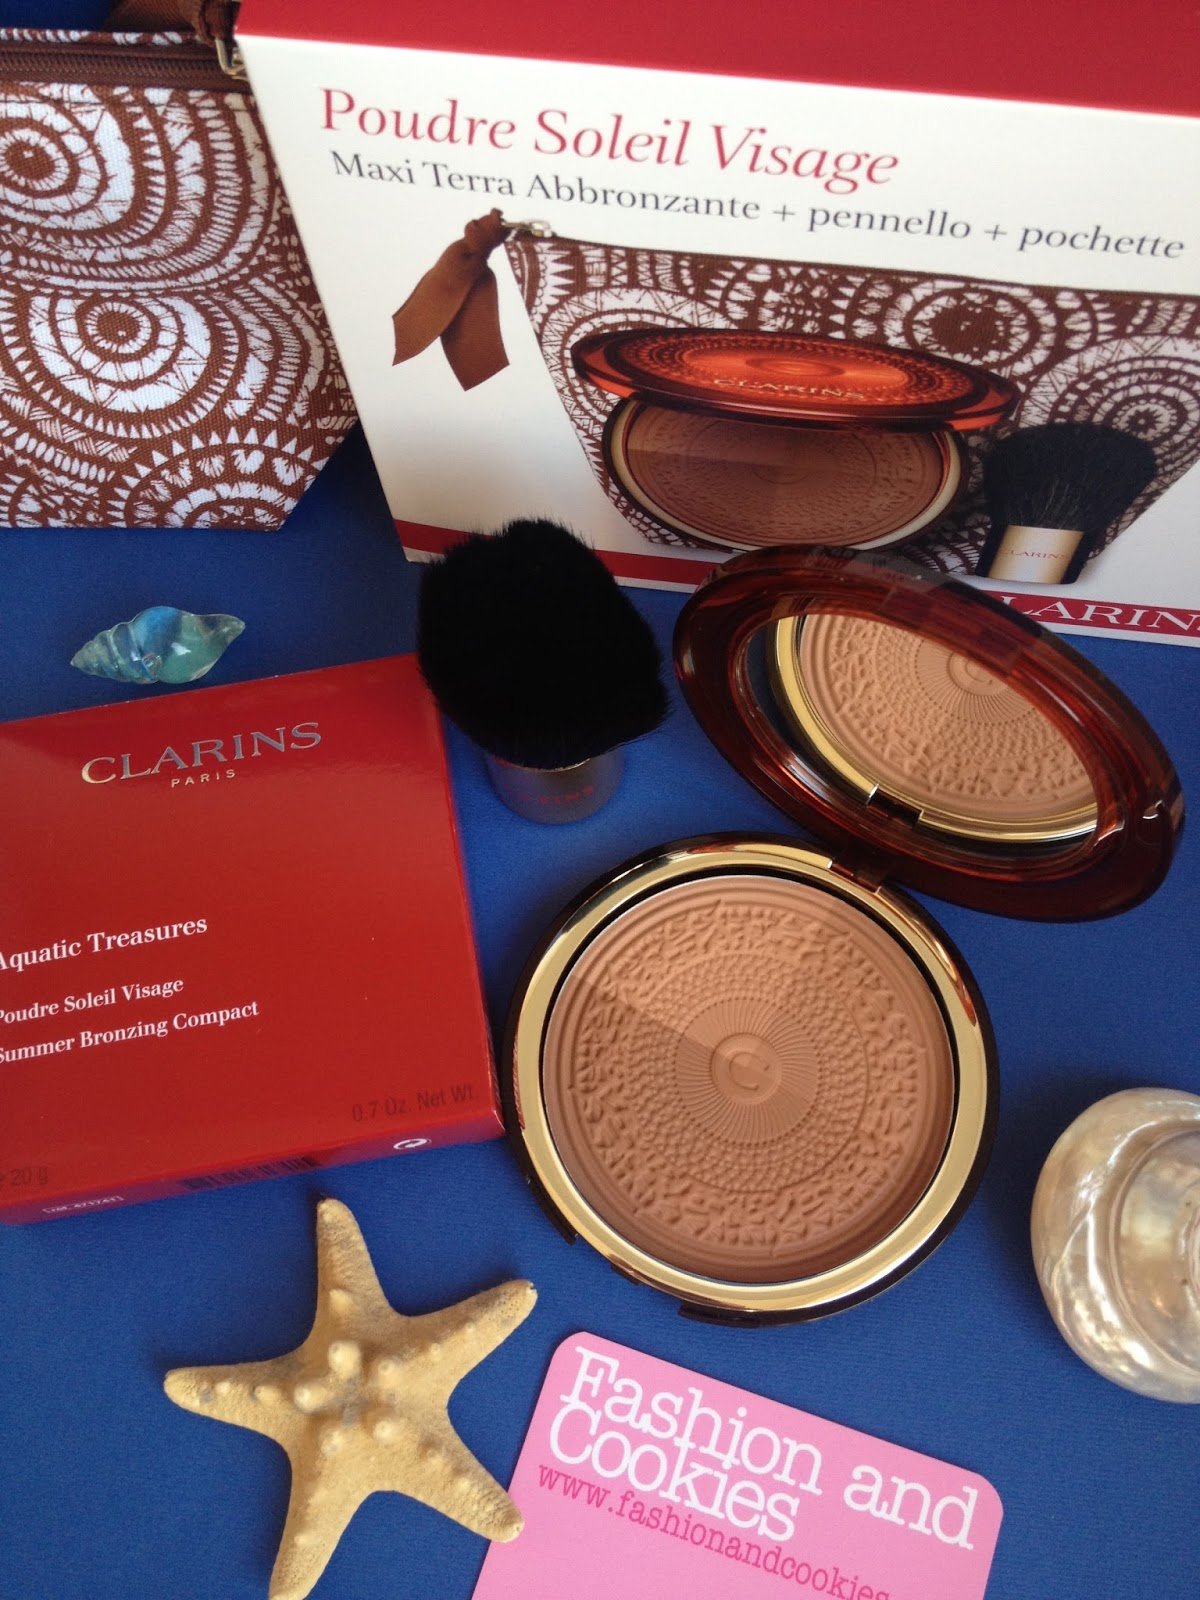 Clarins Aquatic Treasures Poudre Soleil Visage on Fashion and Cookies fashion and beauty blog